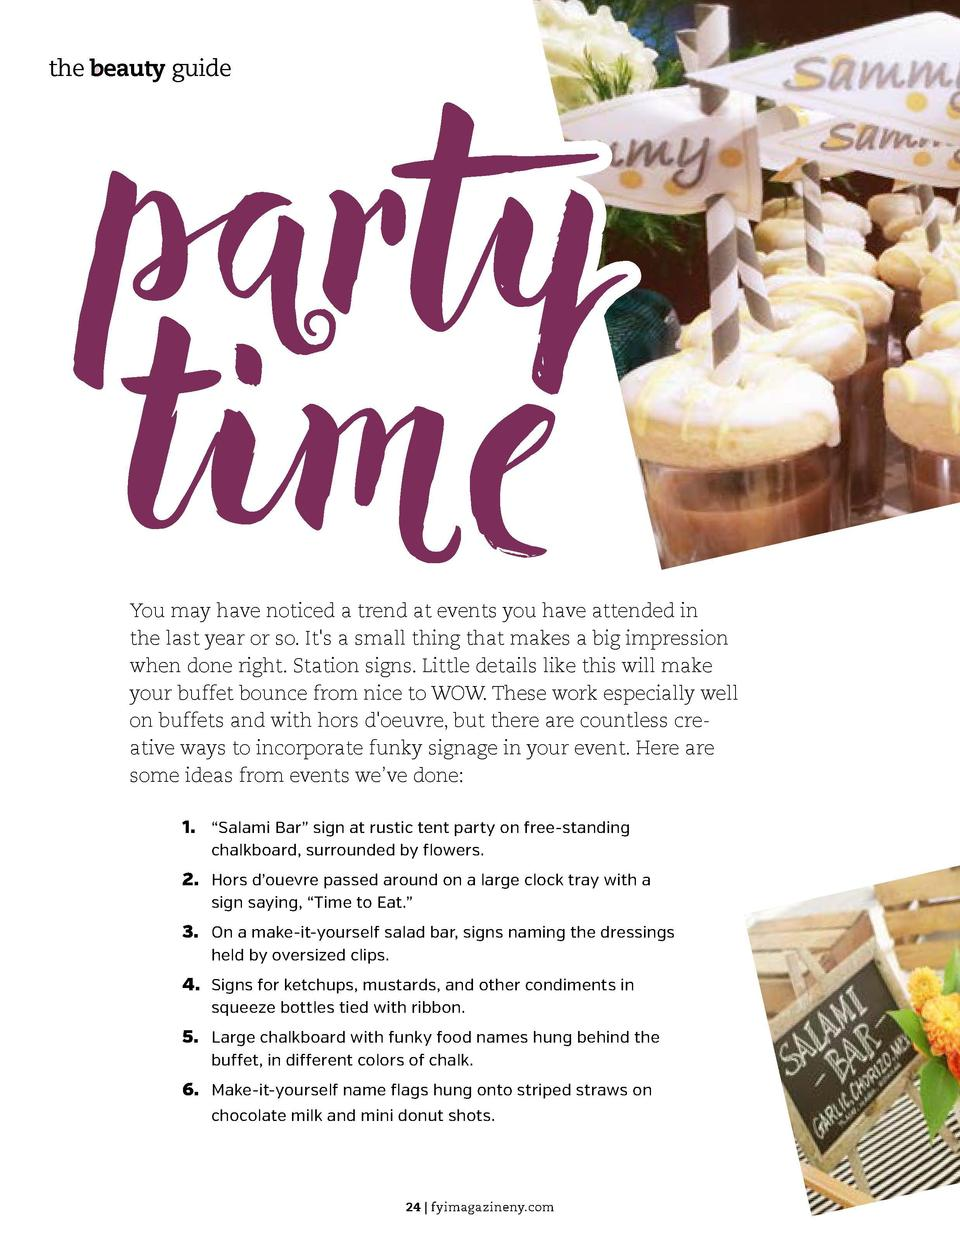 party time  the beauty guide  the beauty guide  You may have noticed a trend at events you have attended in the last year ...